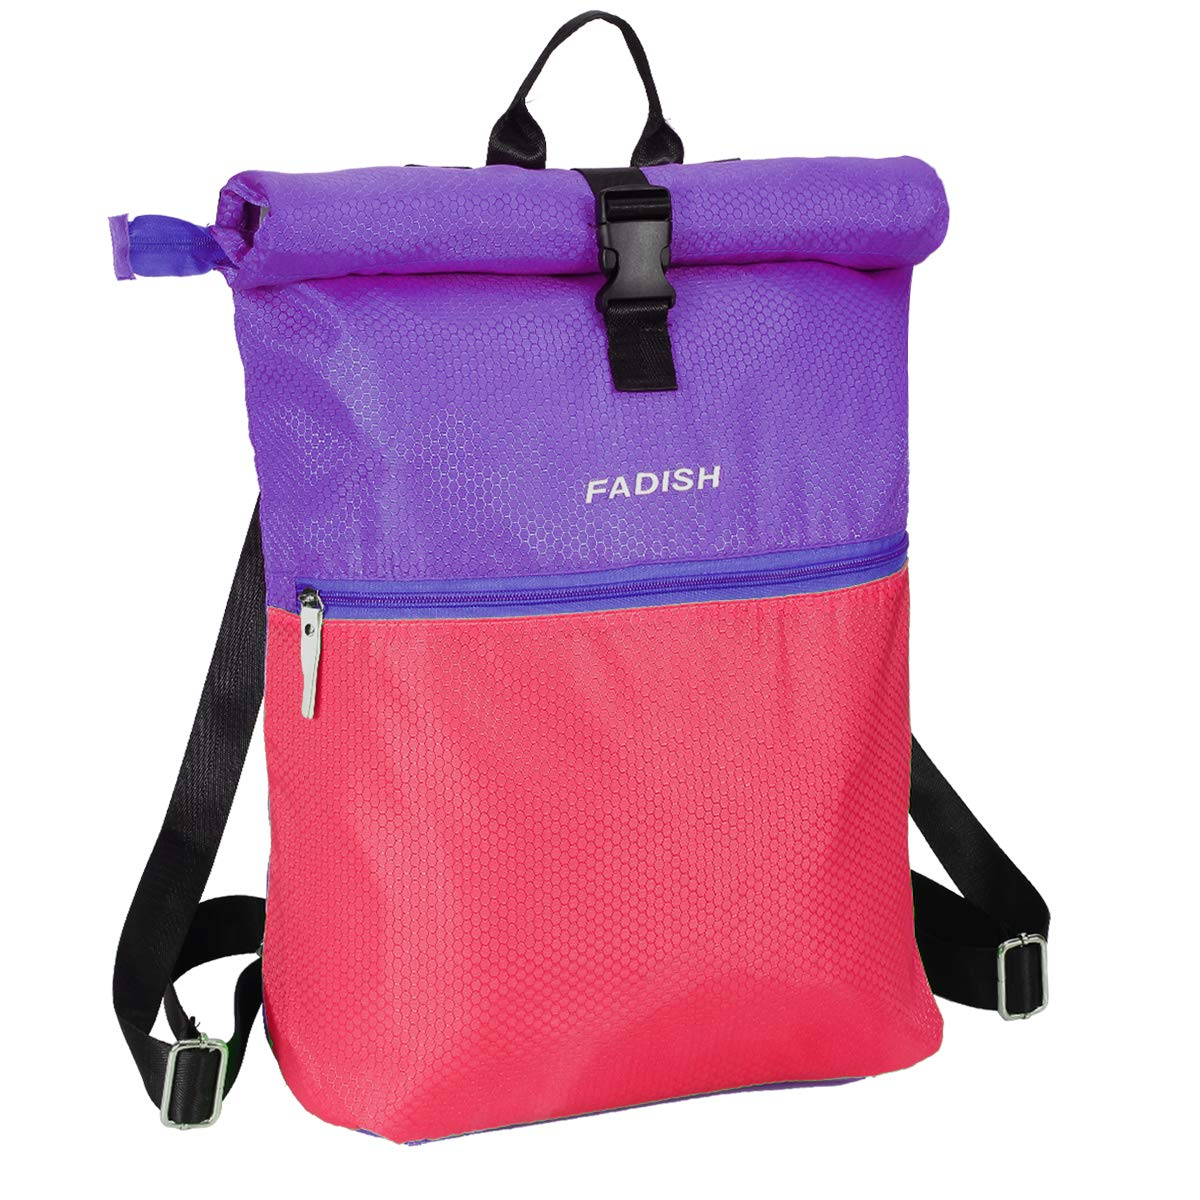 b0ce09267d Caeser Archy Swim Bag 2 In 1 Dry and Wet Clothes Separators Swimming Bag  Outdoor School Gym Sports Bag Unisex Storage Bags for Adults and Kids E- ...